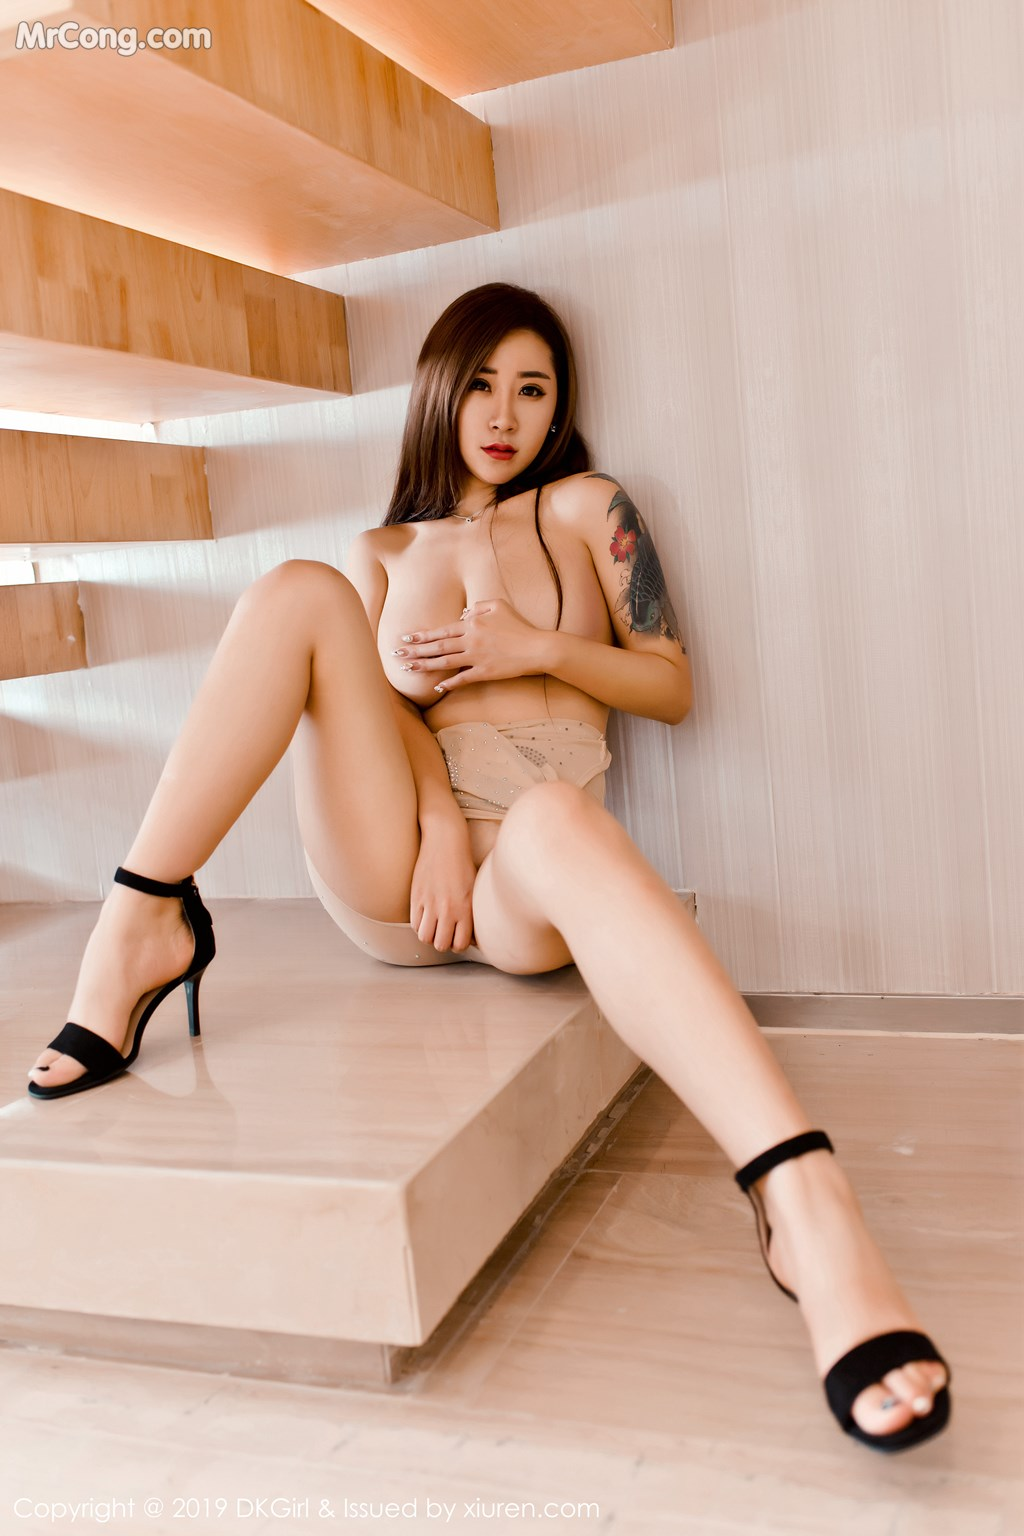 Image DKGirl-Vol.109-Cier-MrCong.com-013 in post DKGirl Vol.109: 雪儿Cier (49 ảnh)